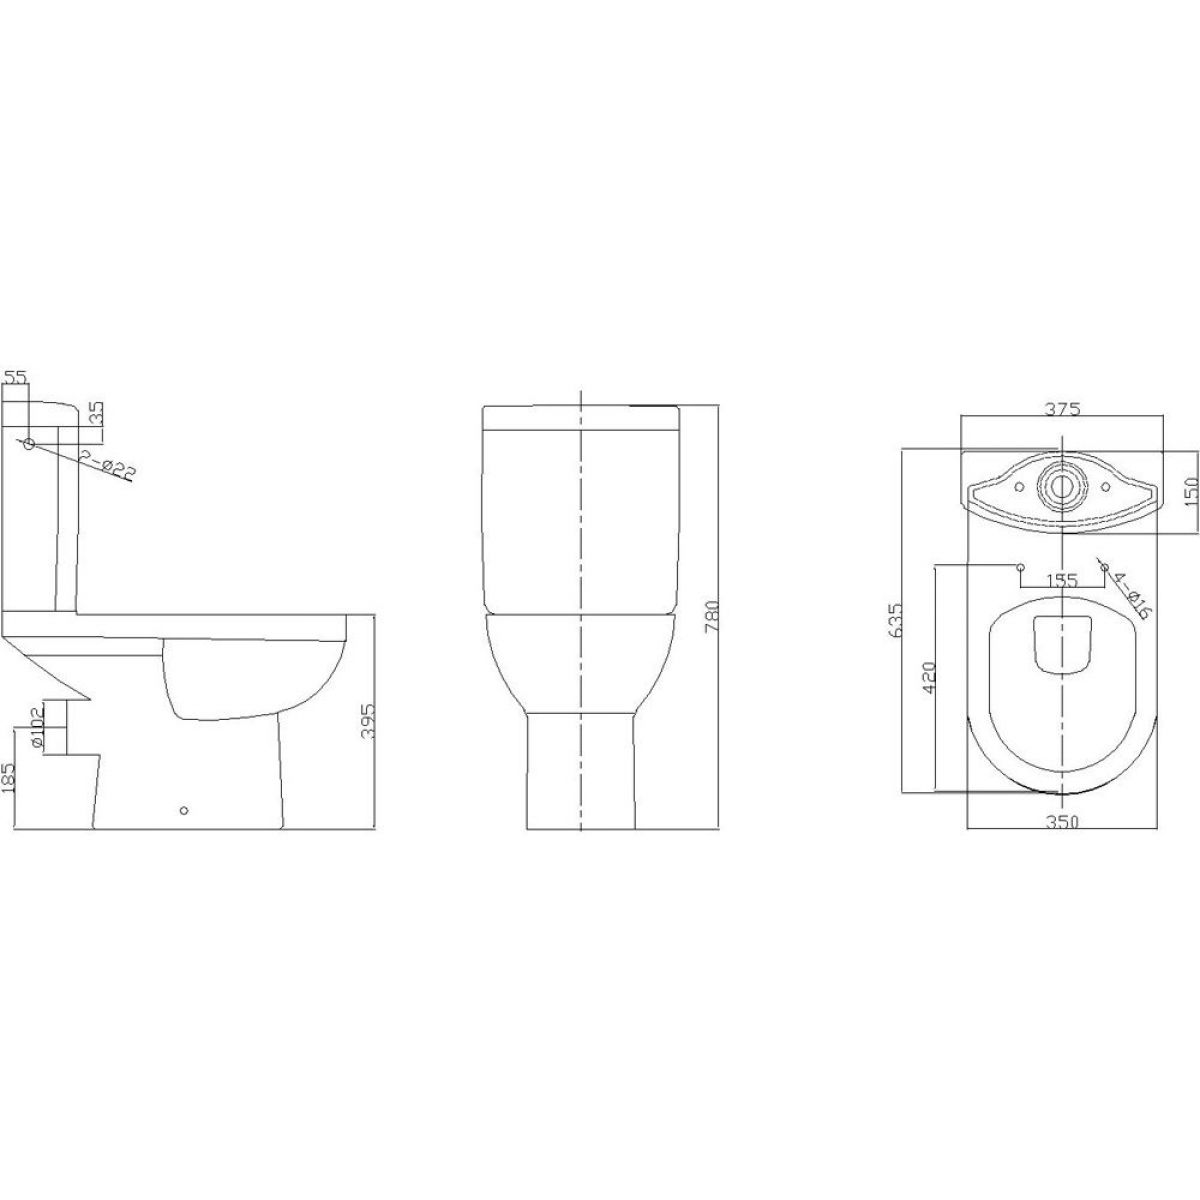 Cassellie Ivo Close Coupled Toilet Drawing